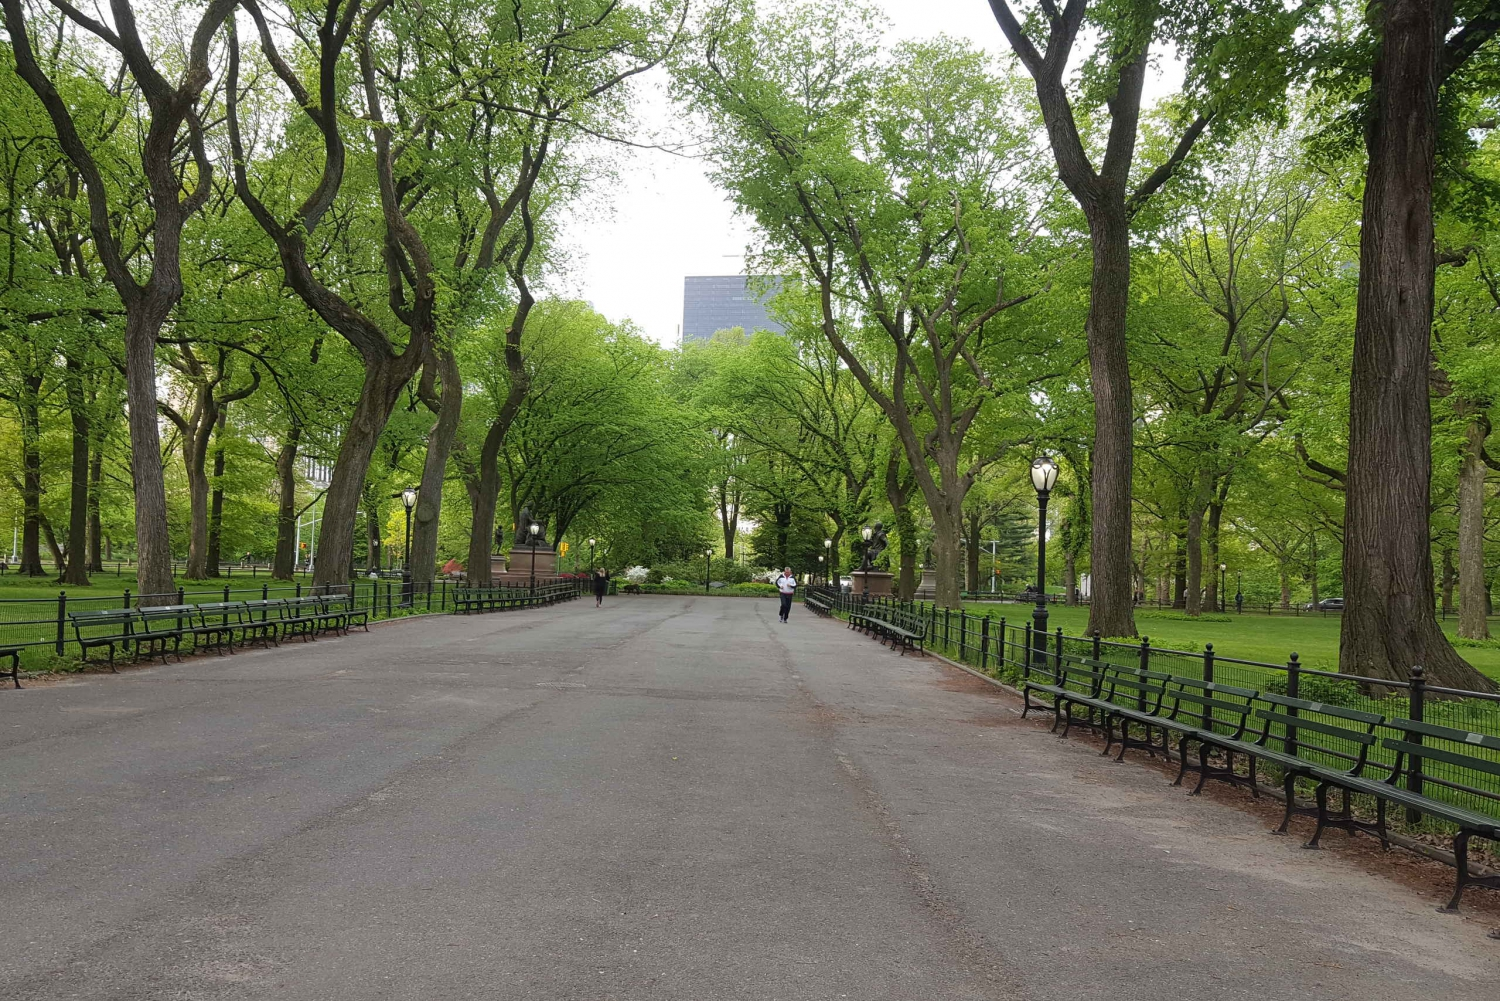 New York City: Central Park Walking Tour